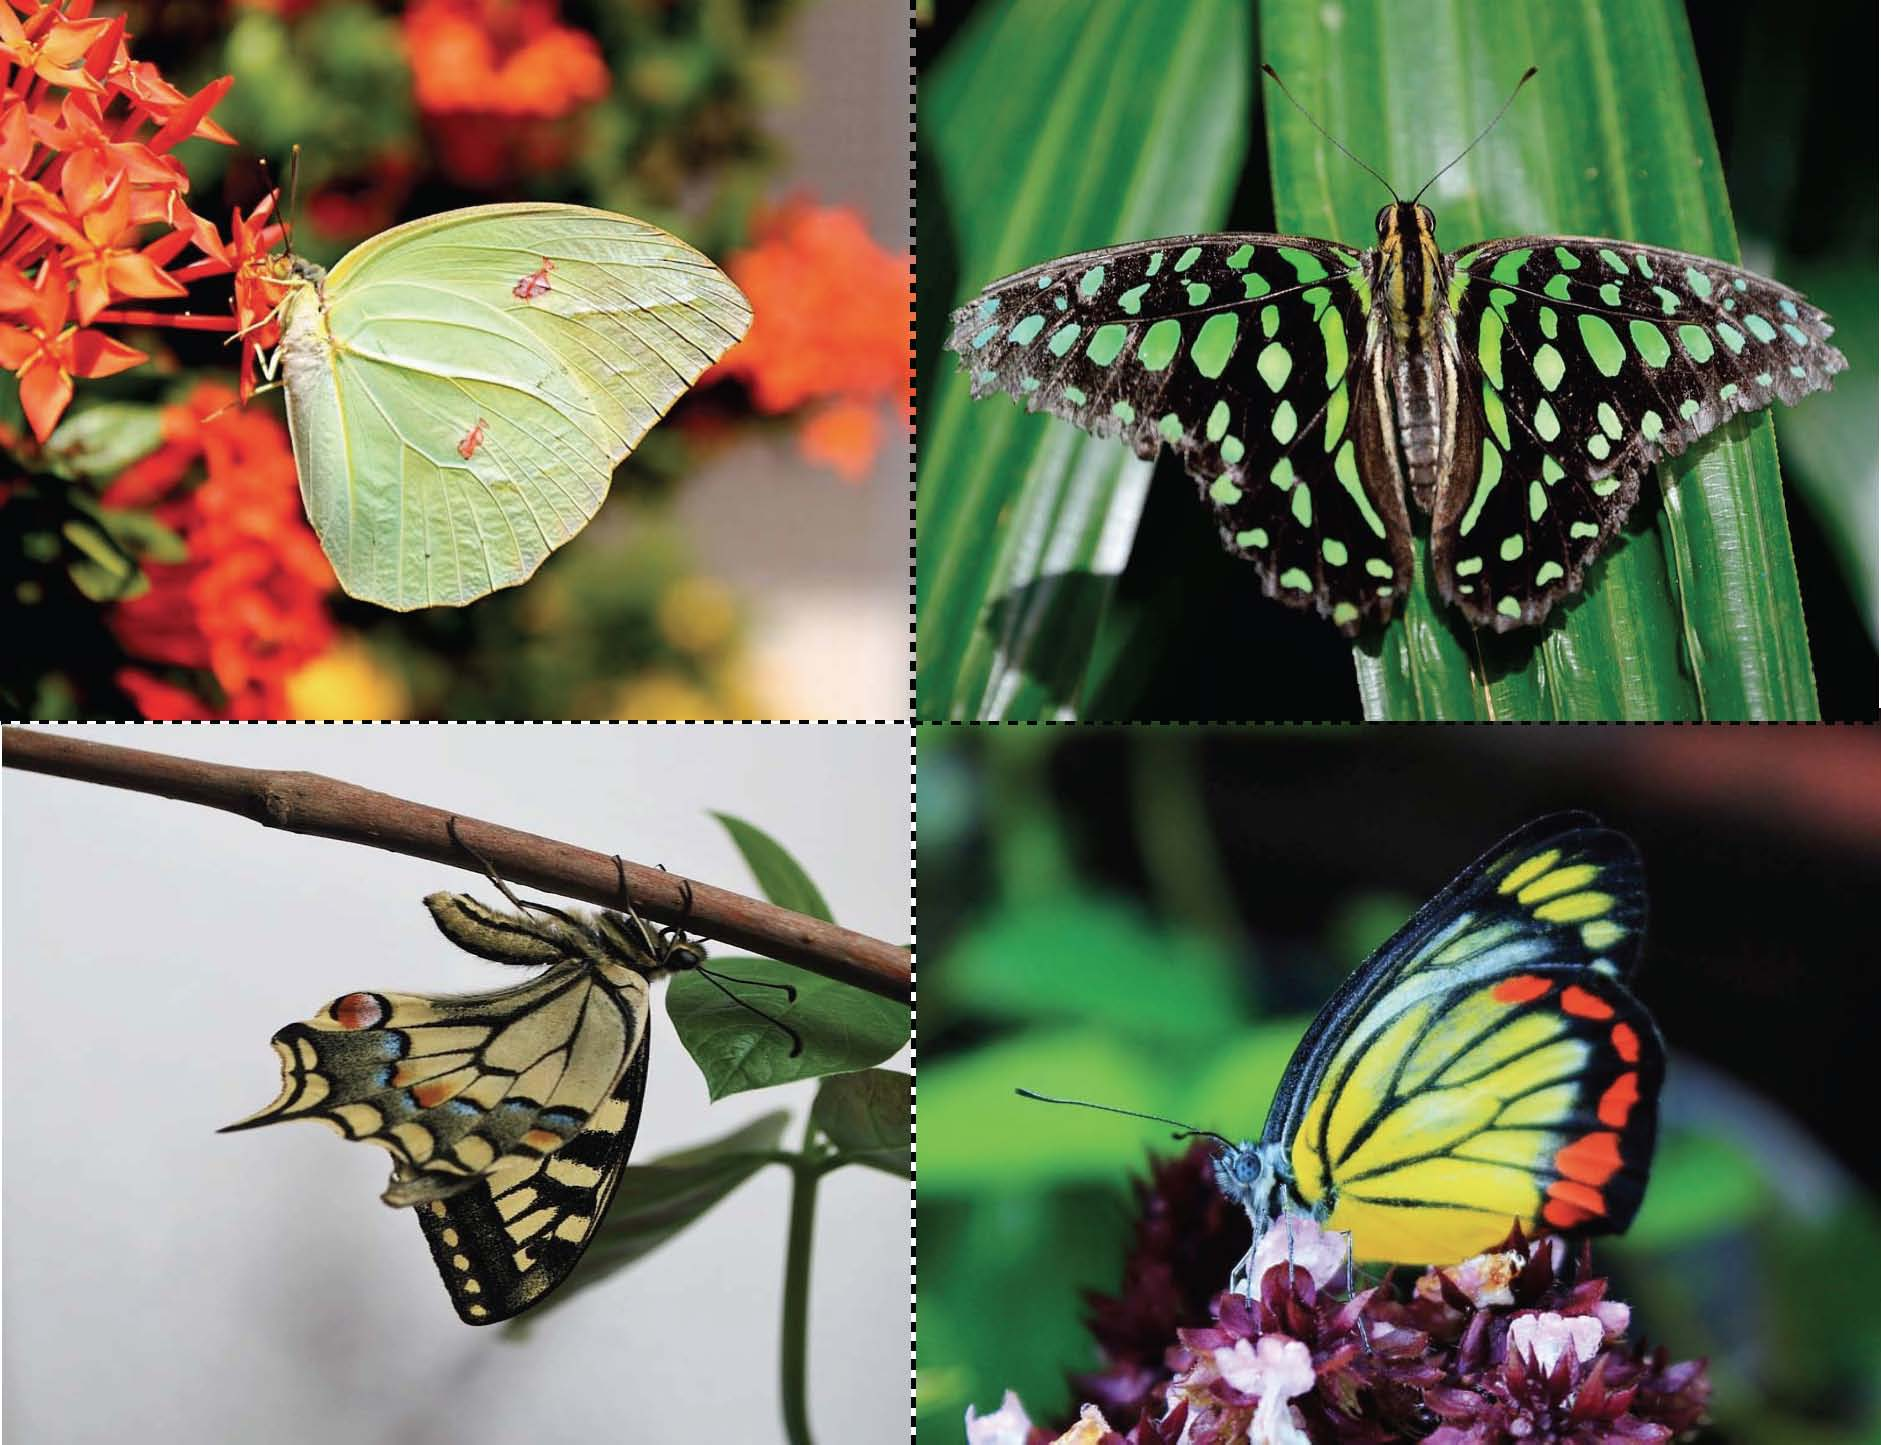 real photographs of a butterfly and caterpillar